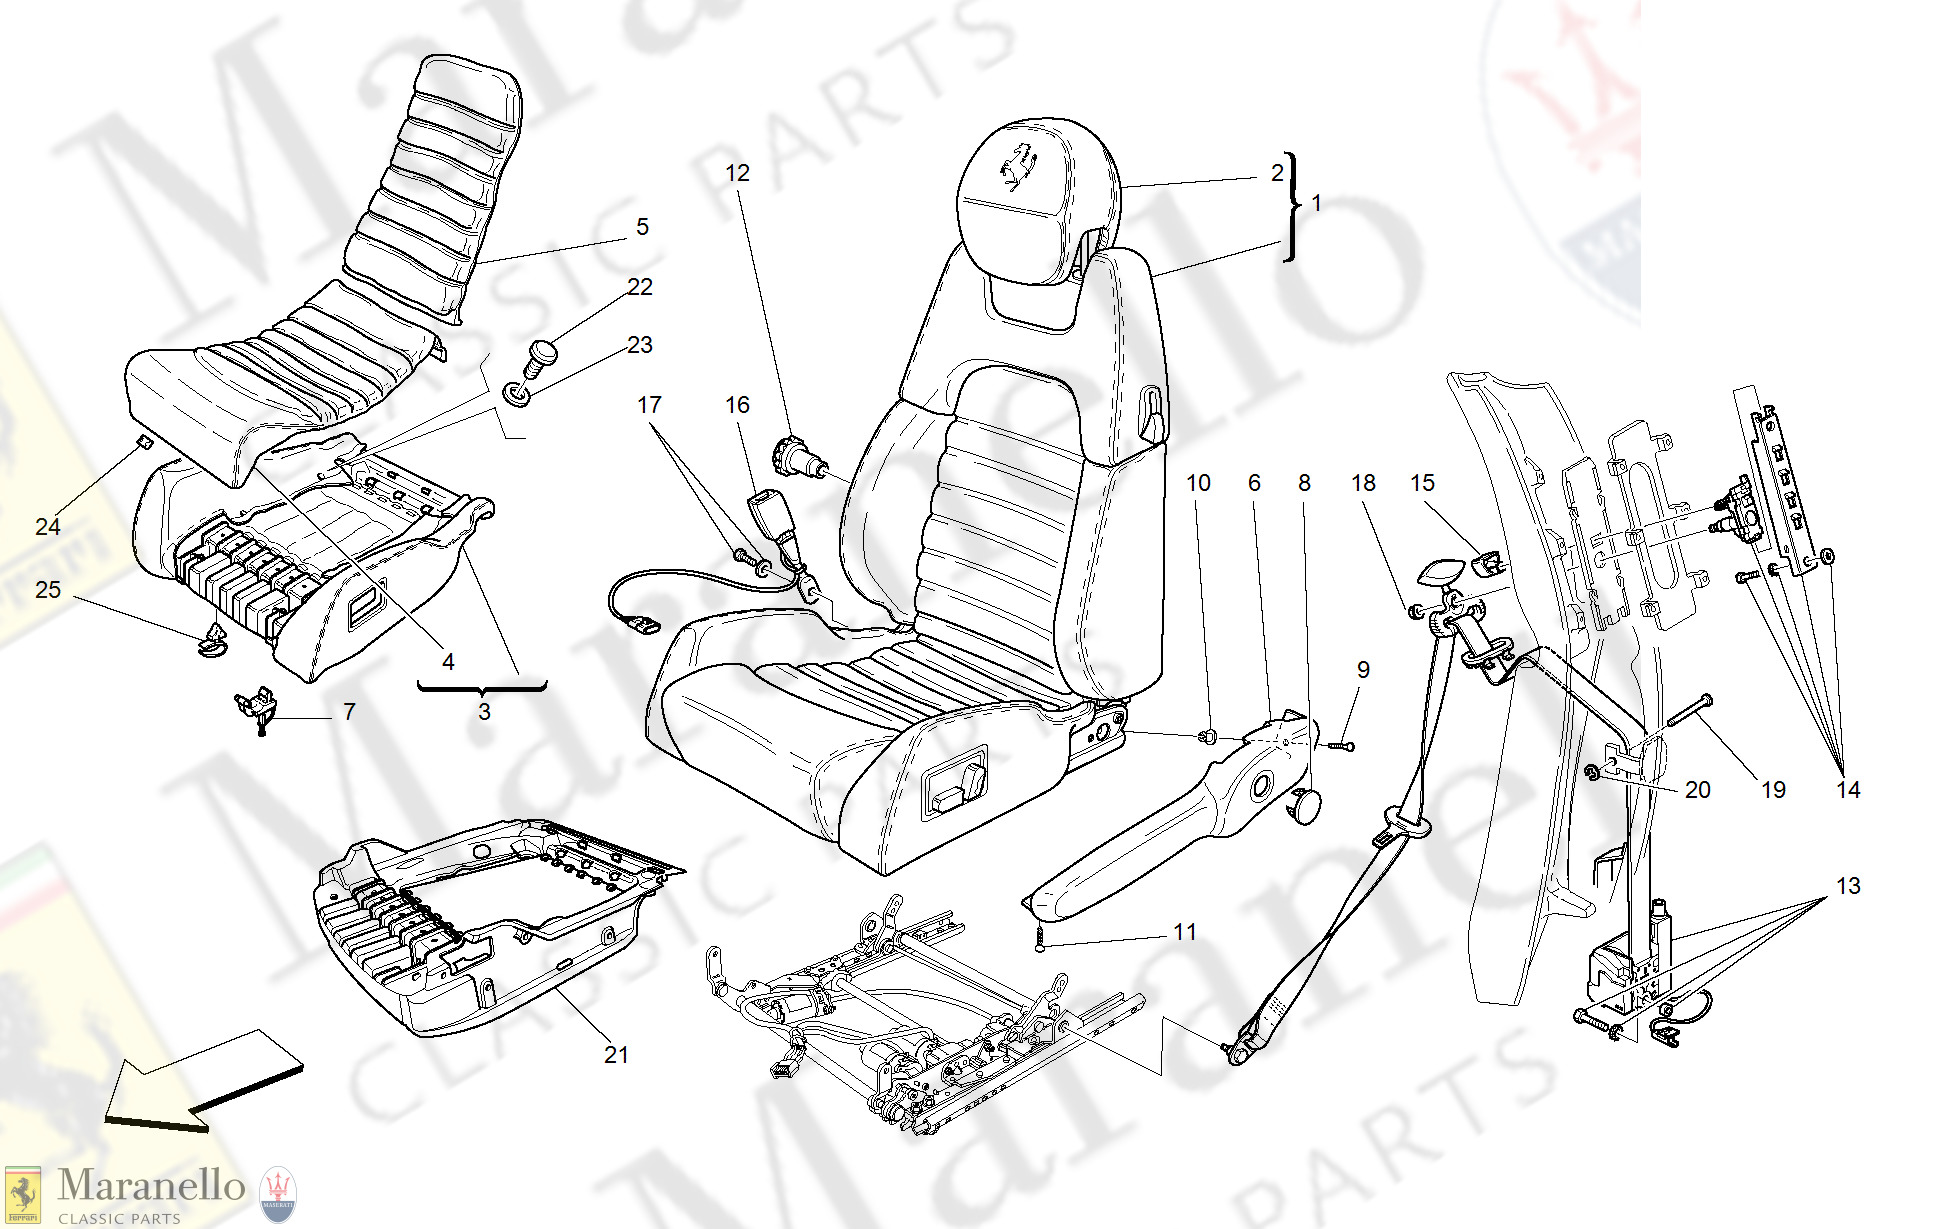 123 - Electrical Seat - Safety Belts